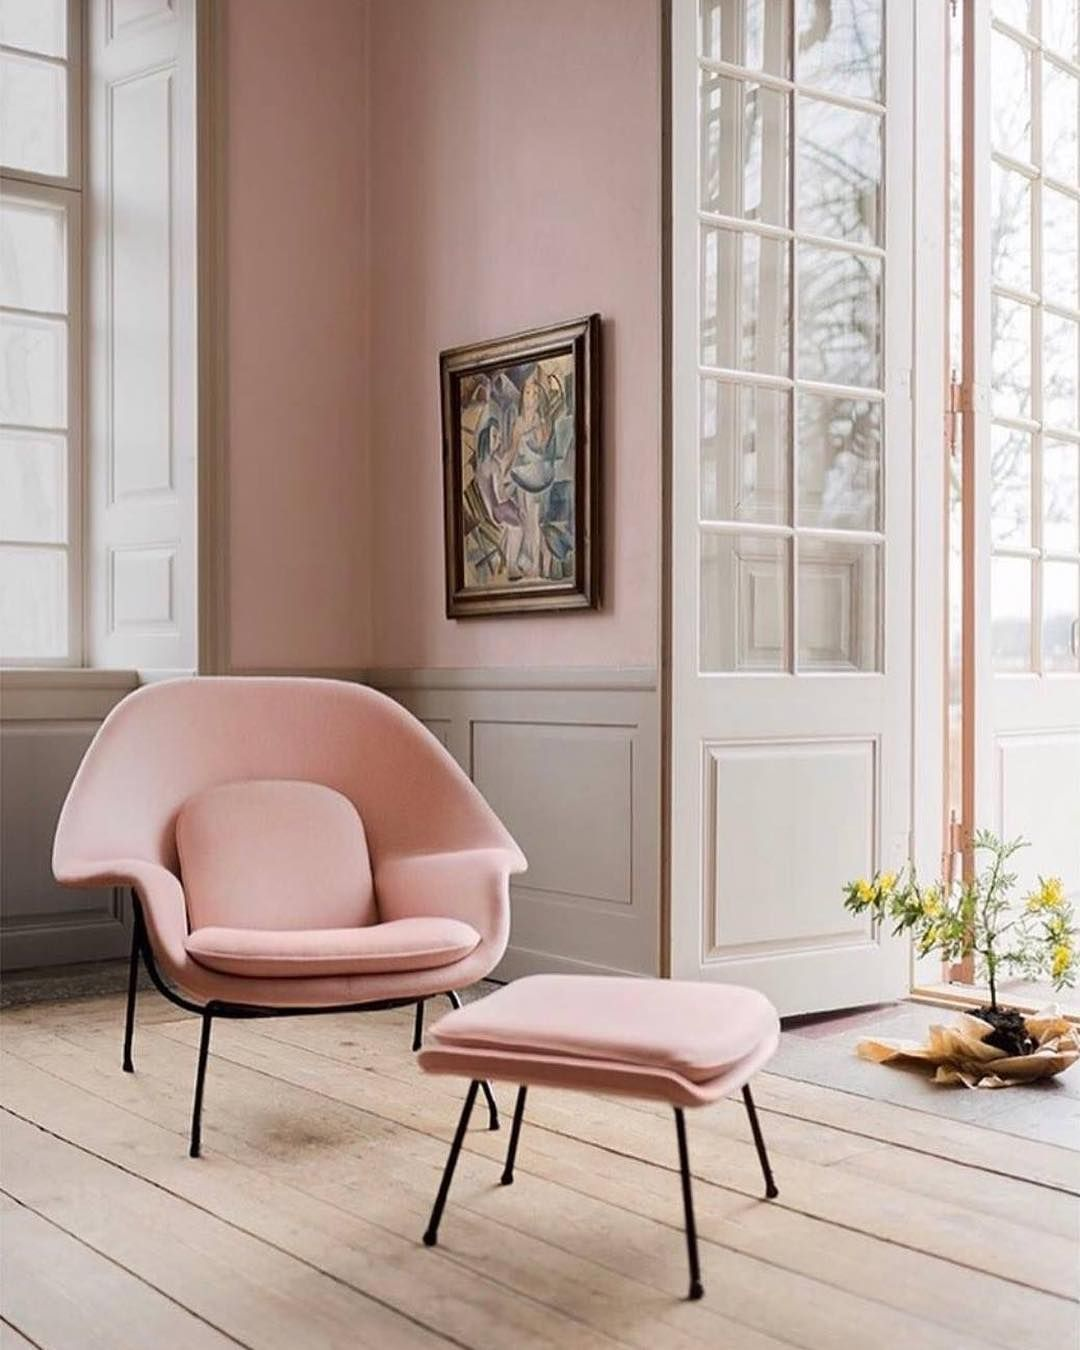 thin pink lounge chair, wooden floor, pink wall, grey wainscoting wall